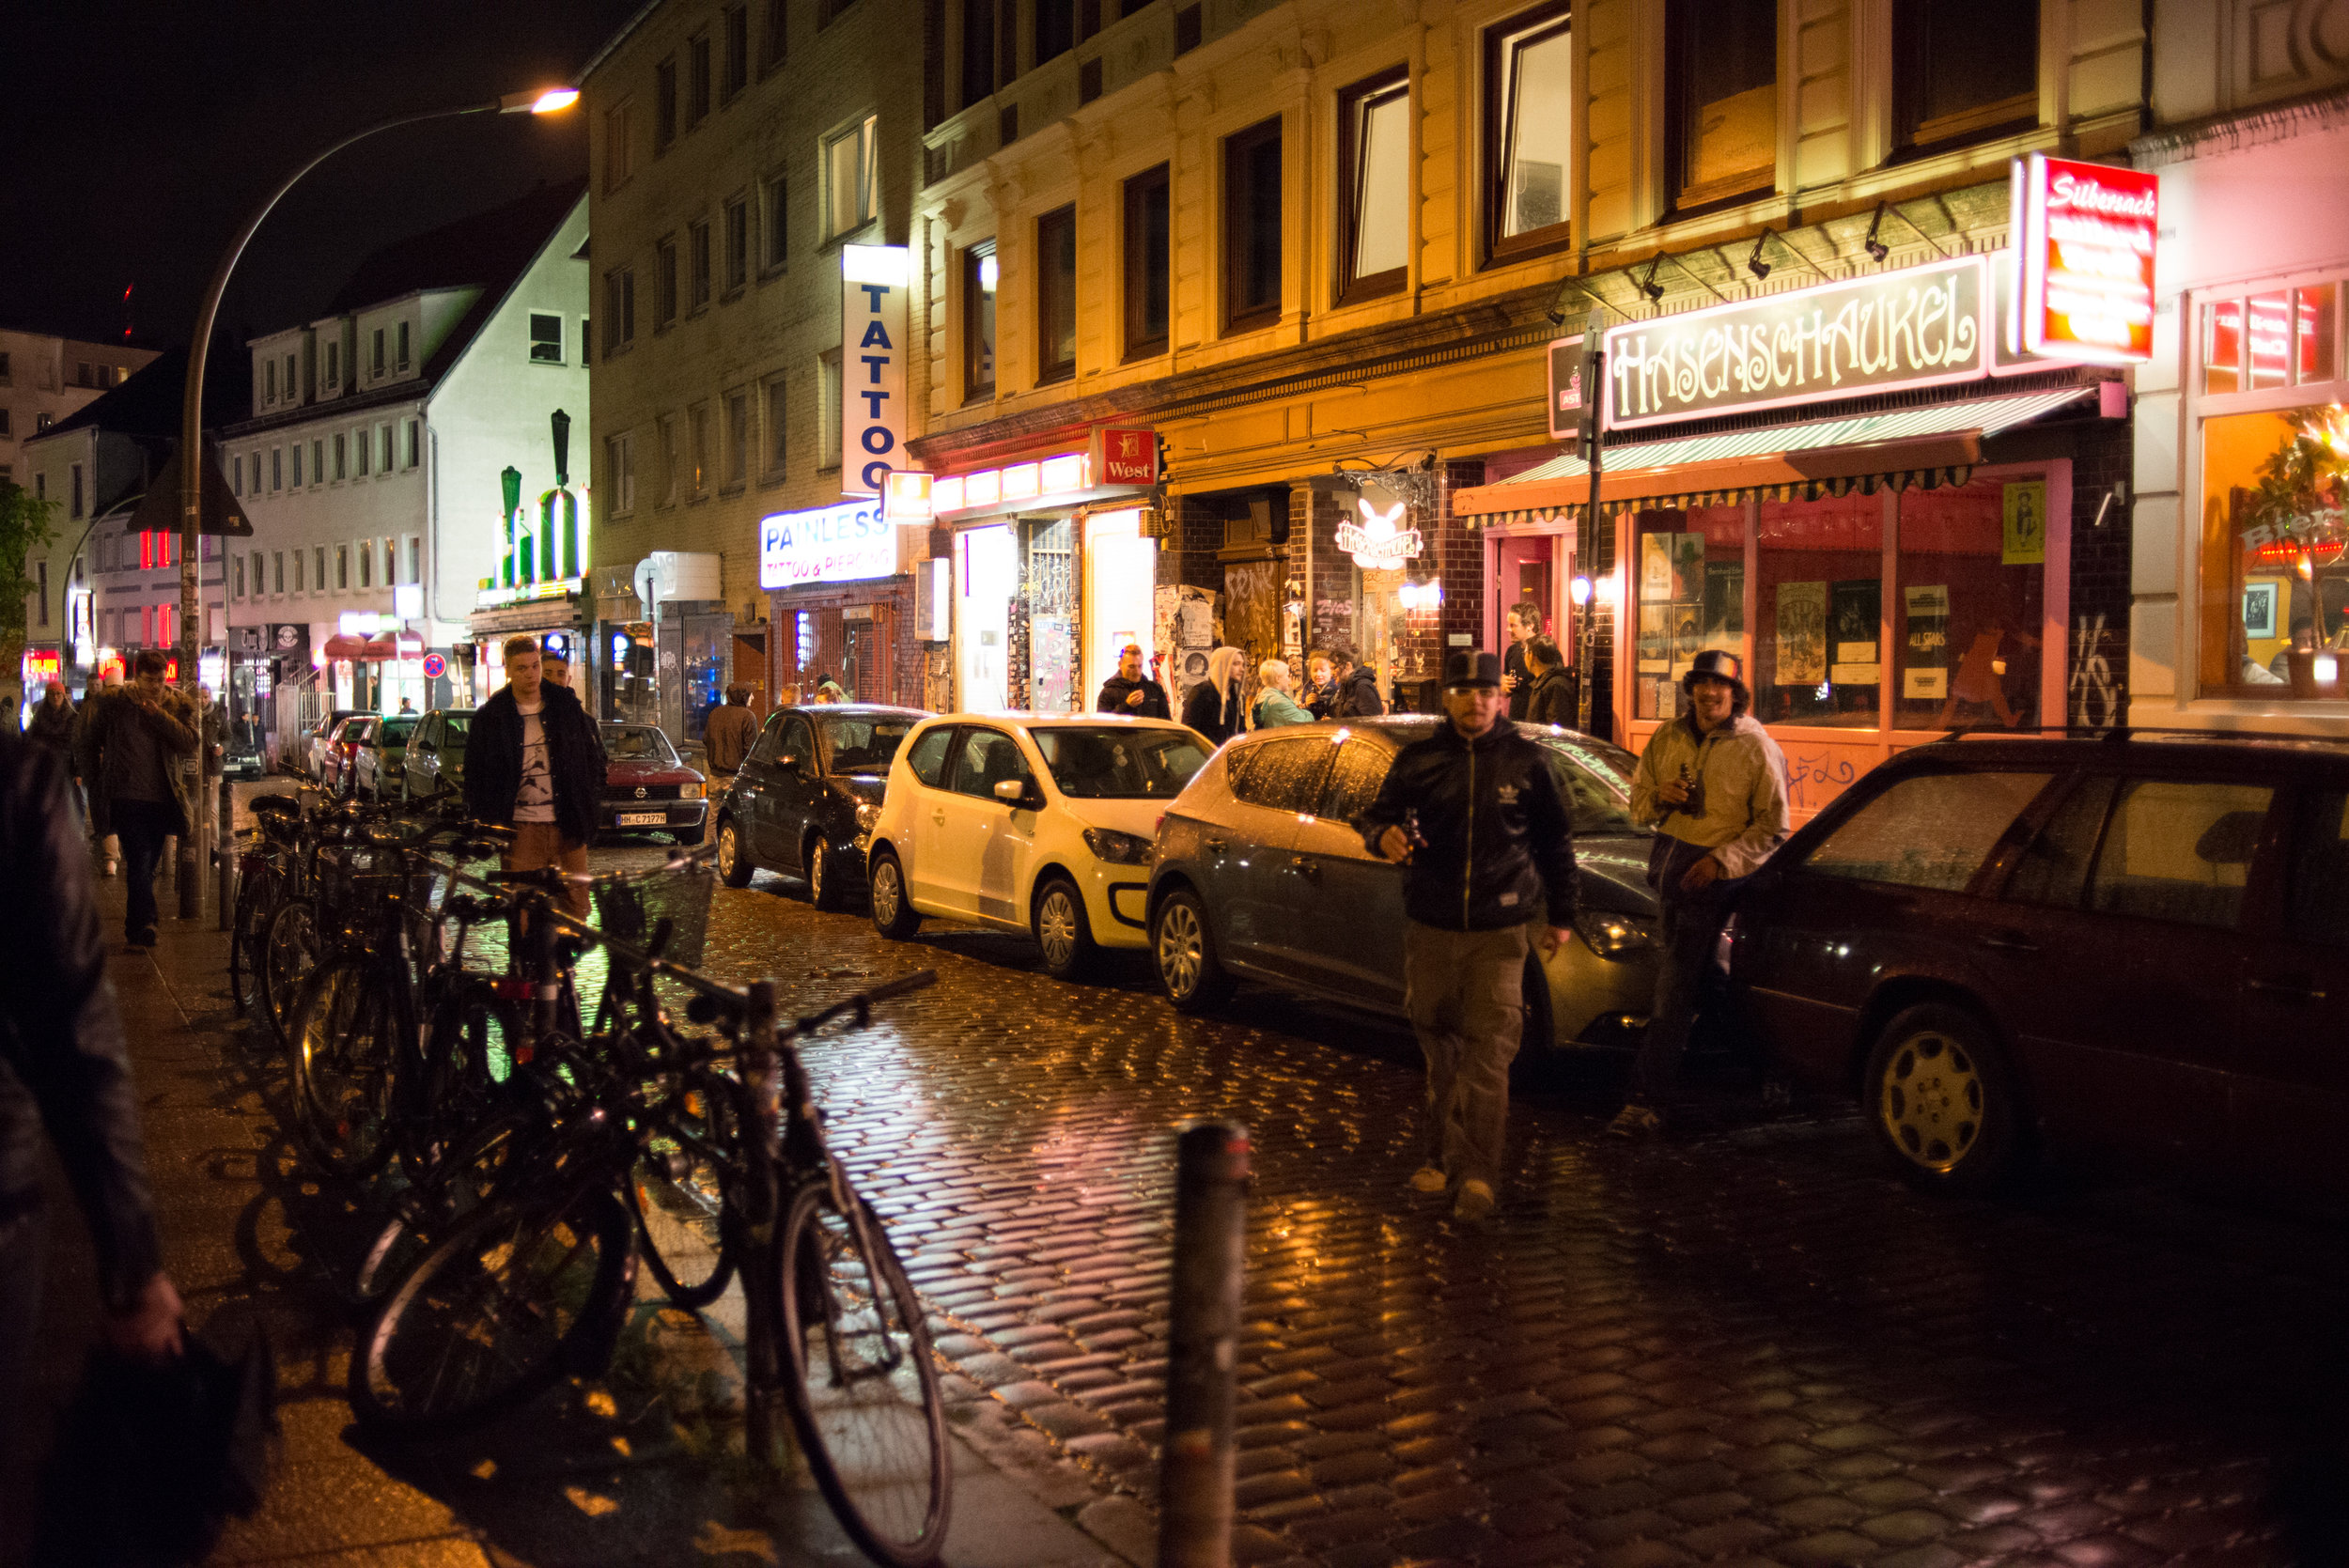 The streets in the St. Pauli district at night.